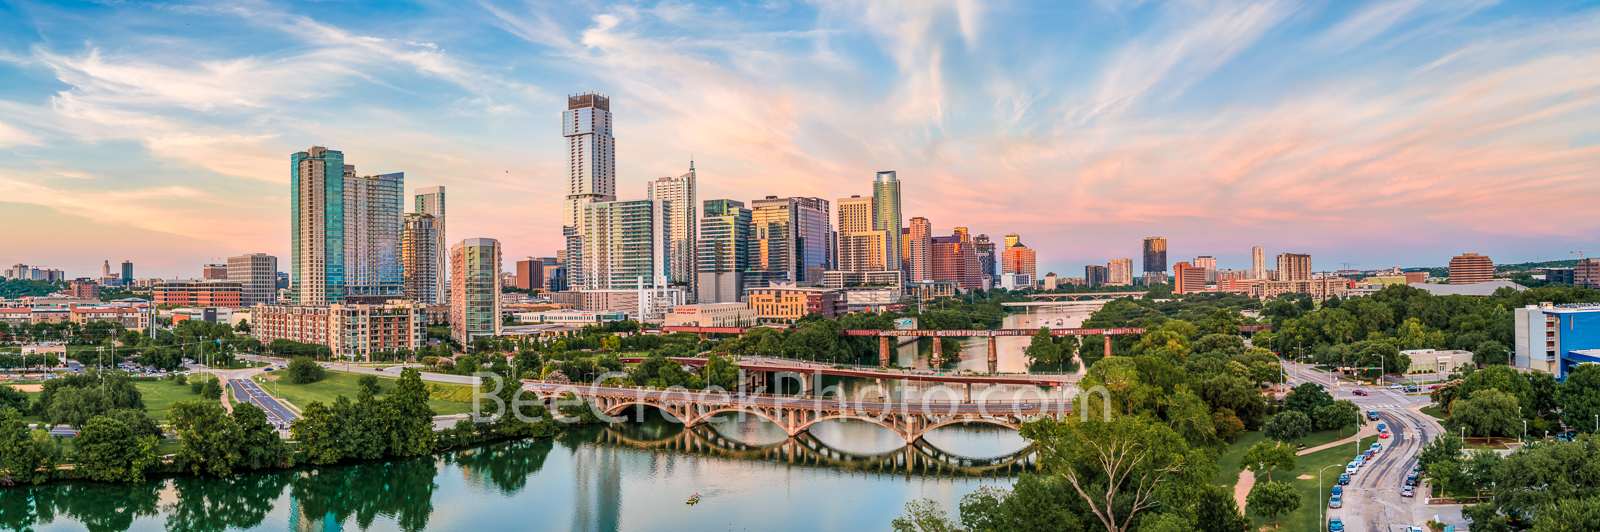 Austin skyline, aerial, drone, sunset, pics of texas, pics of austin, lamar bridge, first st. bridge, lady bird lake, clouds, pink, orange, sky, clouds, hike and bike trail, colorado river, architectu, photo